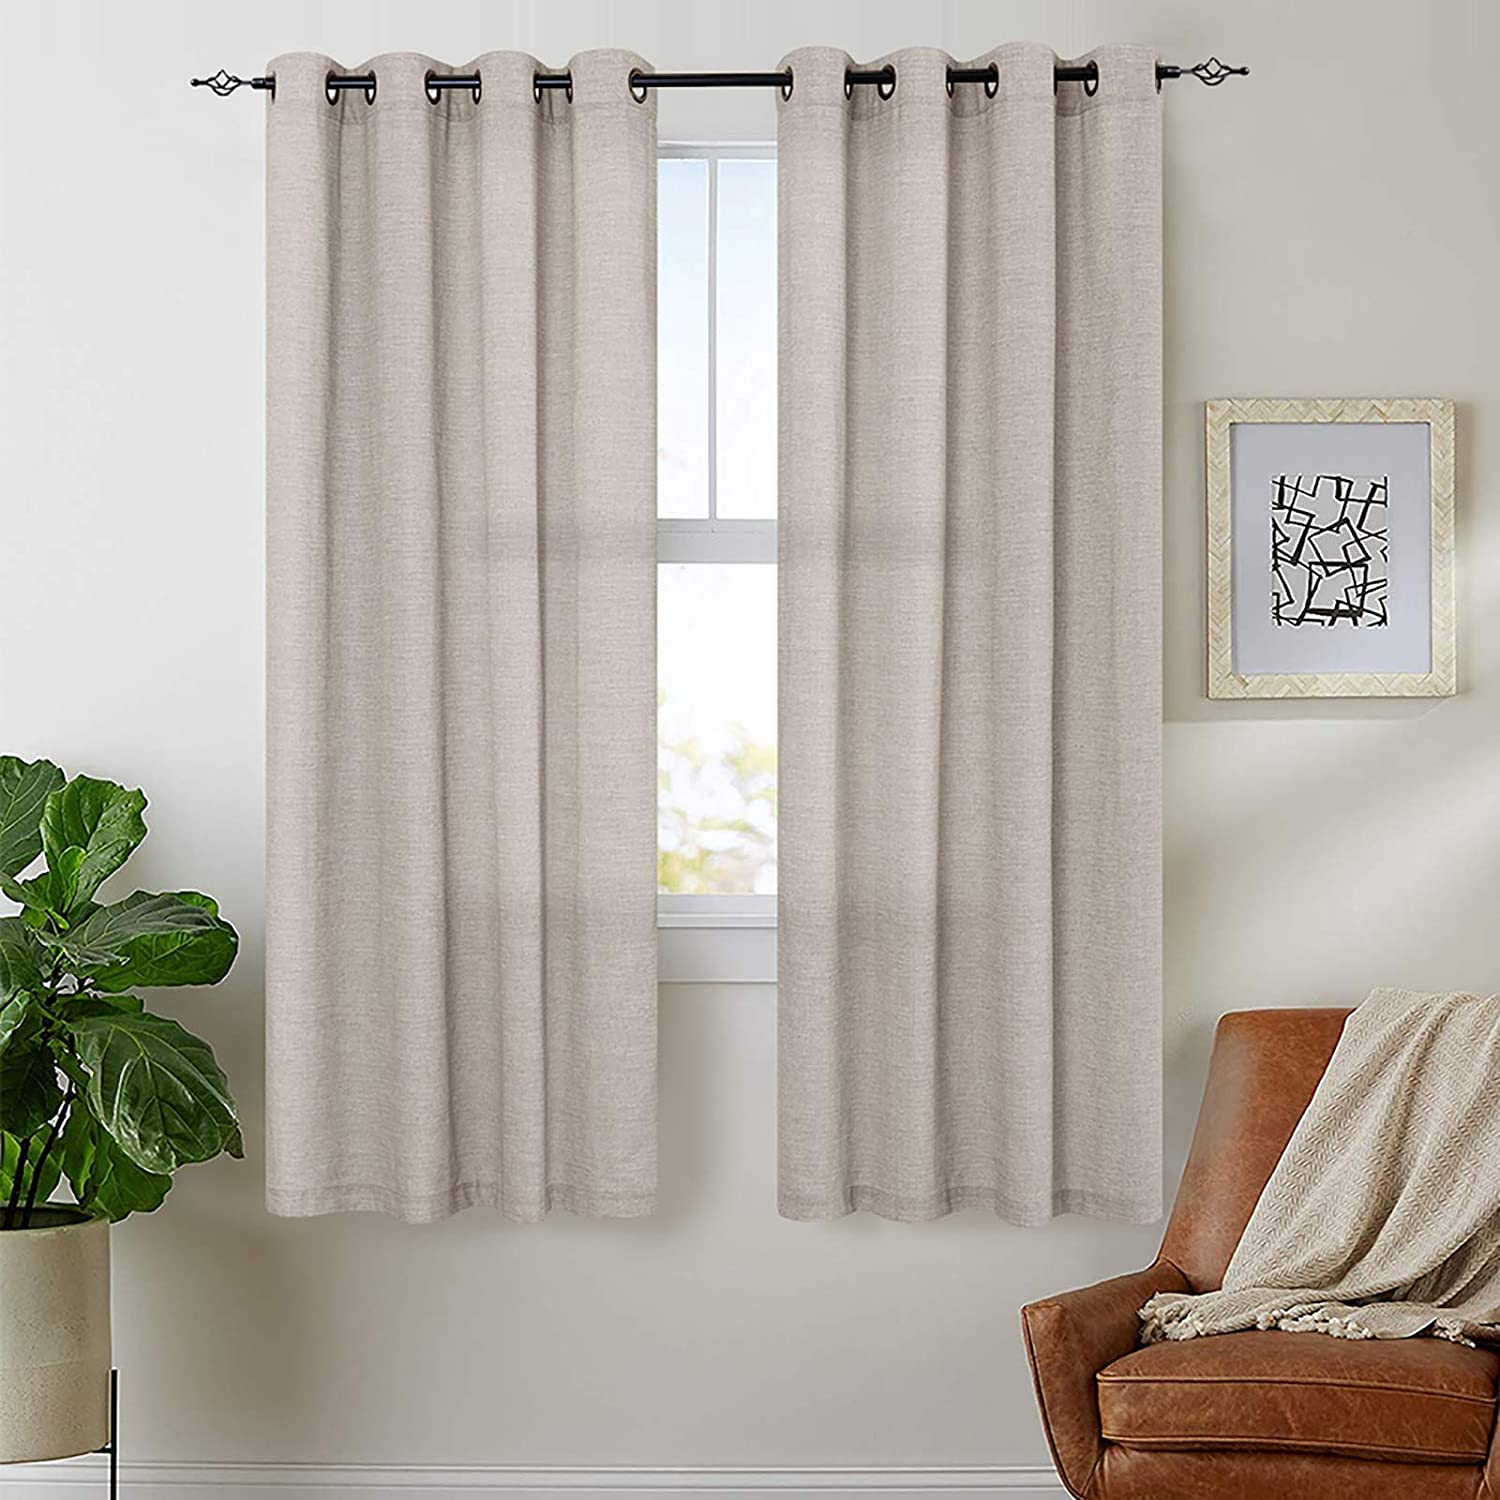 jinchan Linen Textured Curtains for Living Room Grommet Top Window Treatment Set for Bedroom 2 Panels 63 inches Long Gray